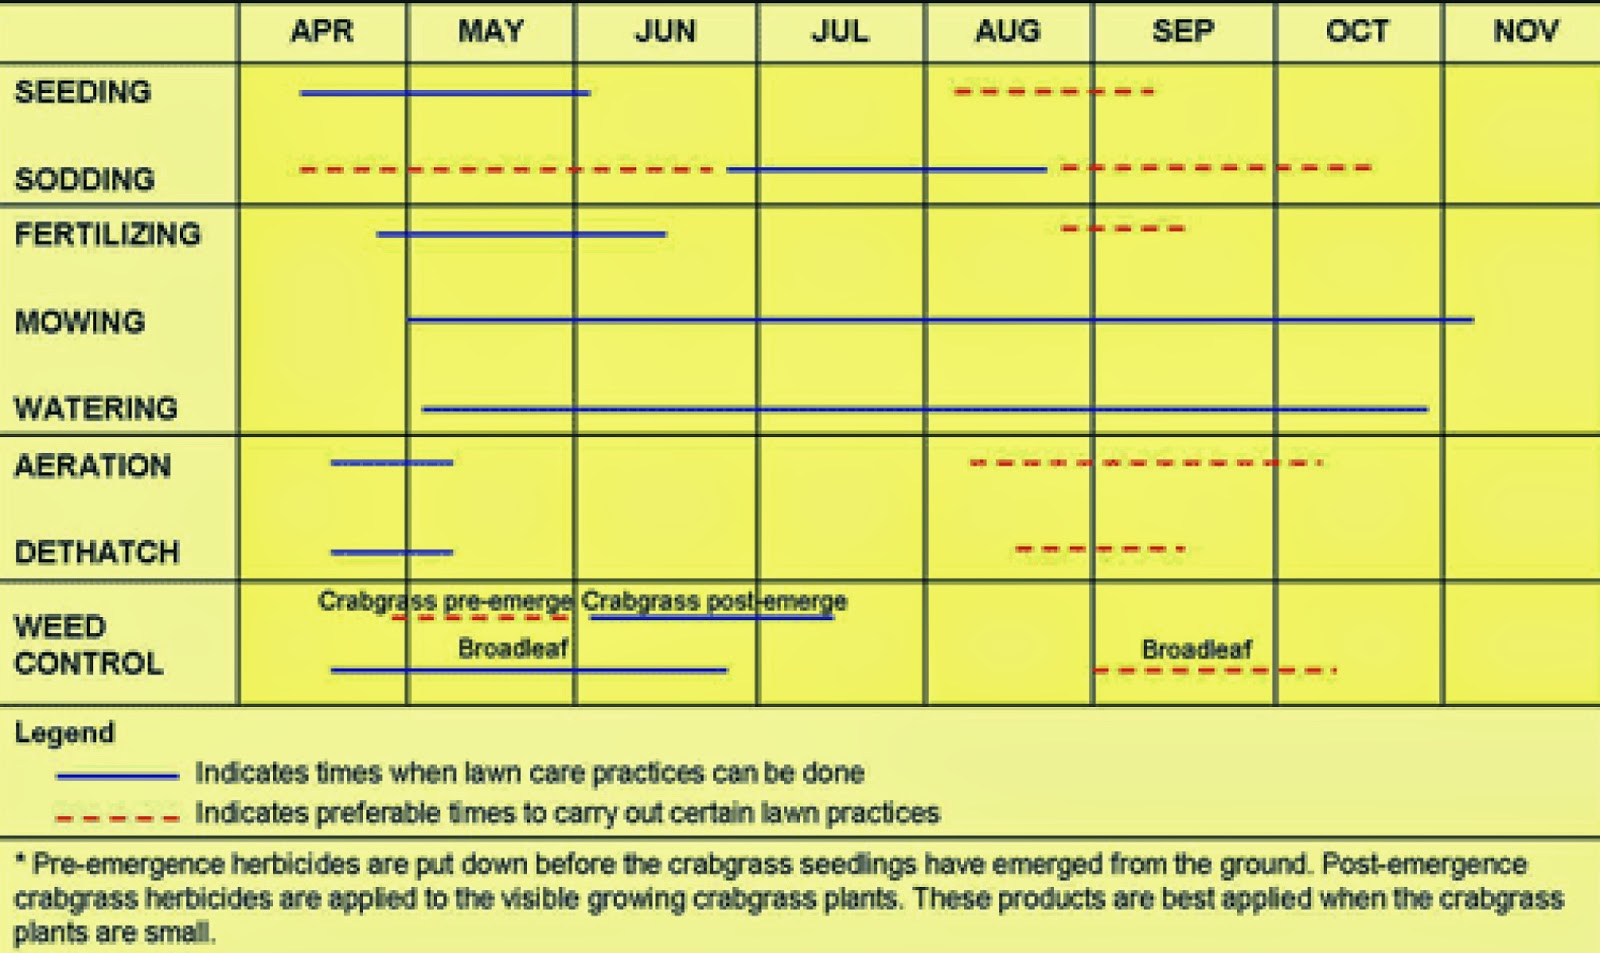 Upper midwest home lawn care calendar yard and garden for Lawn maintenance schedule